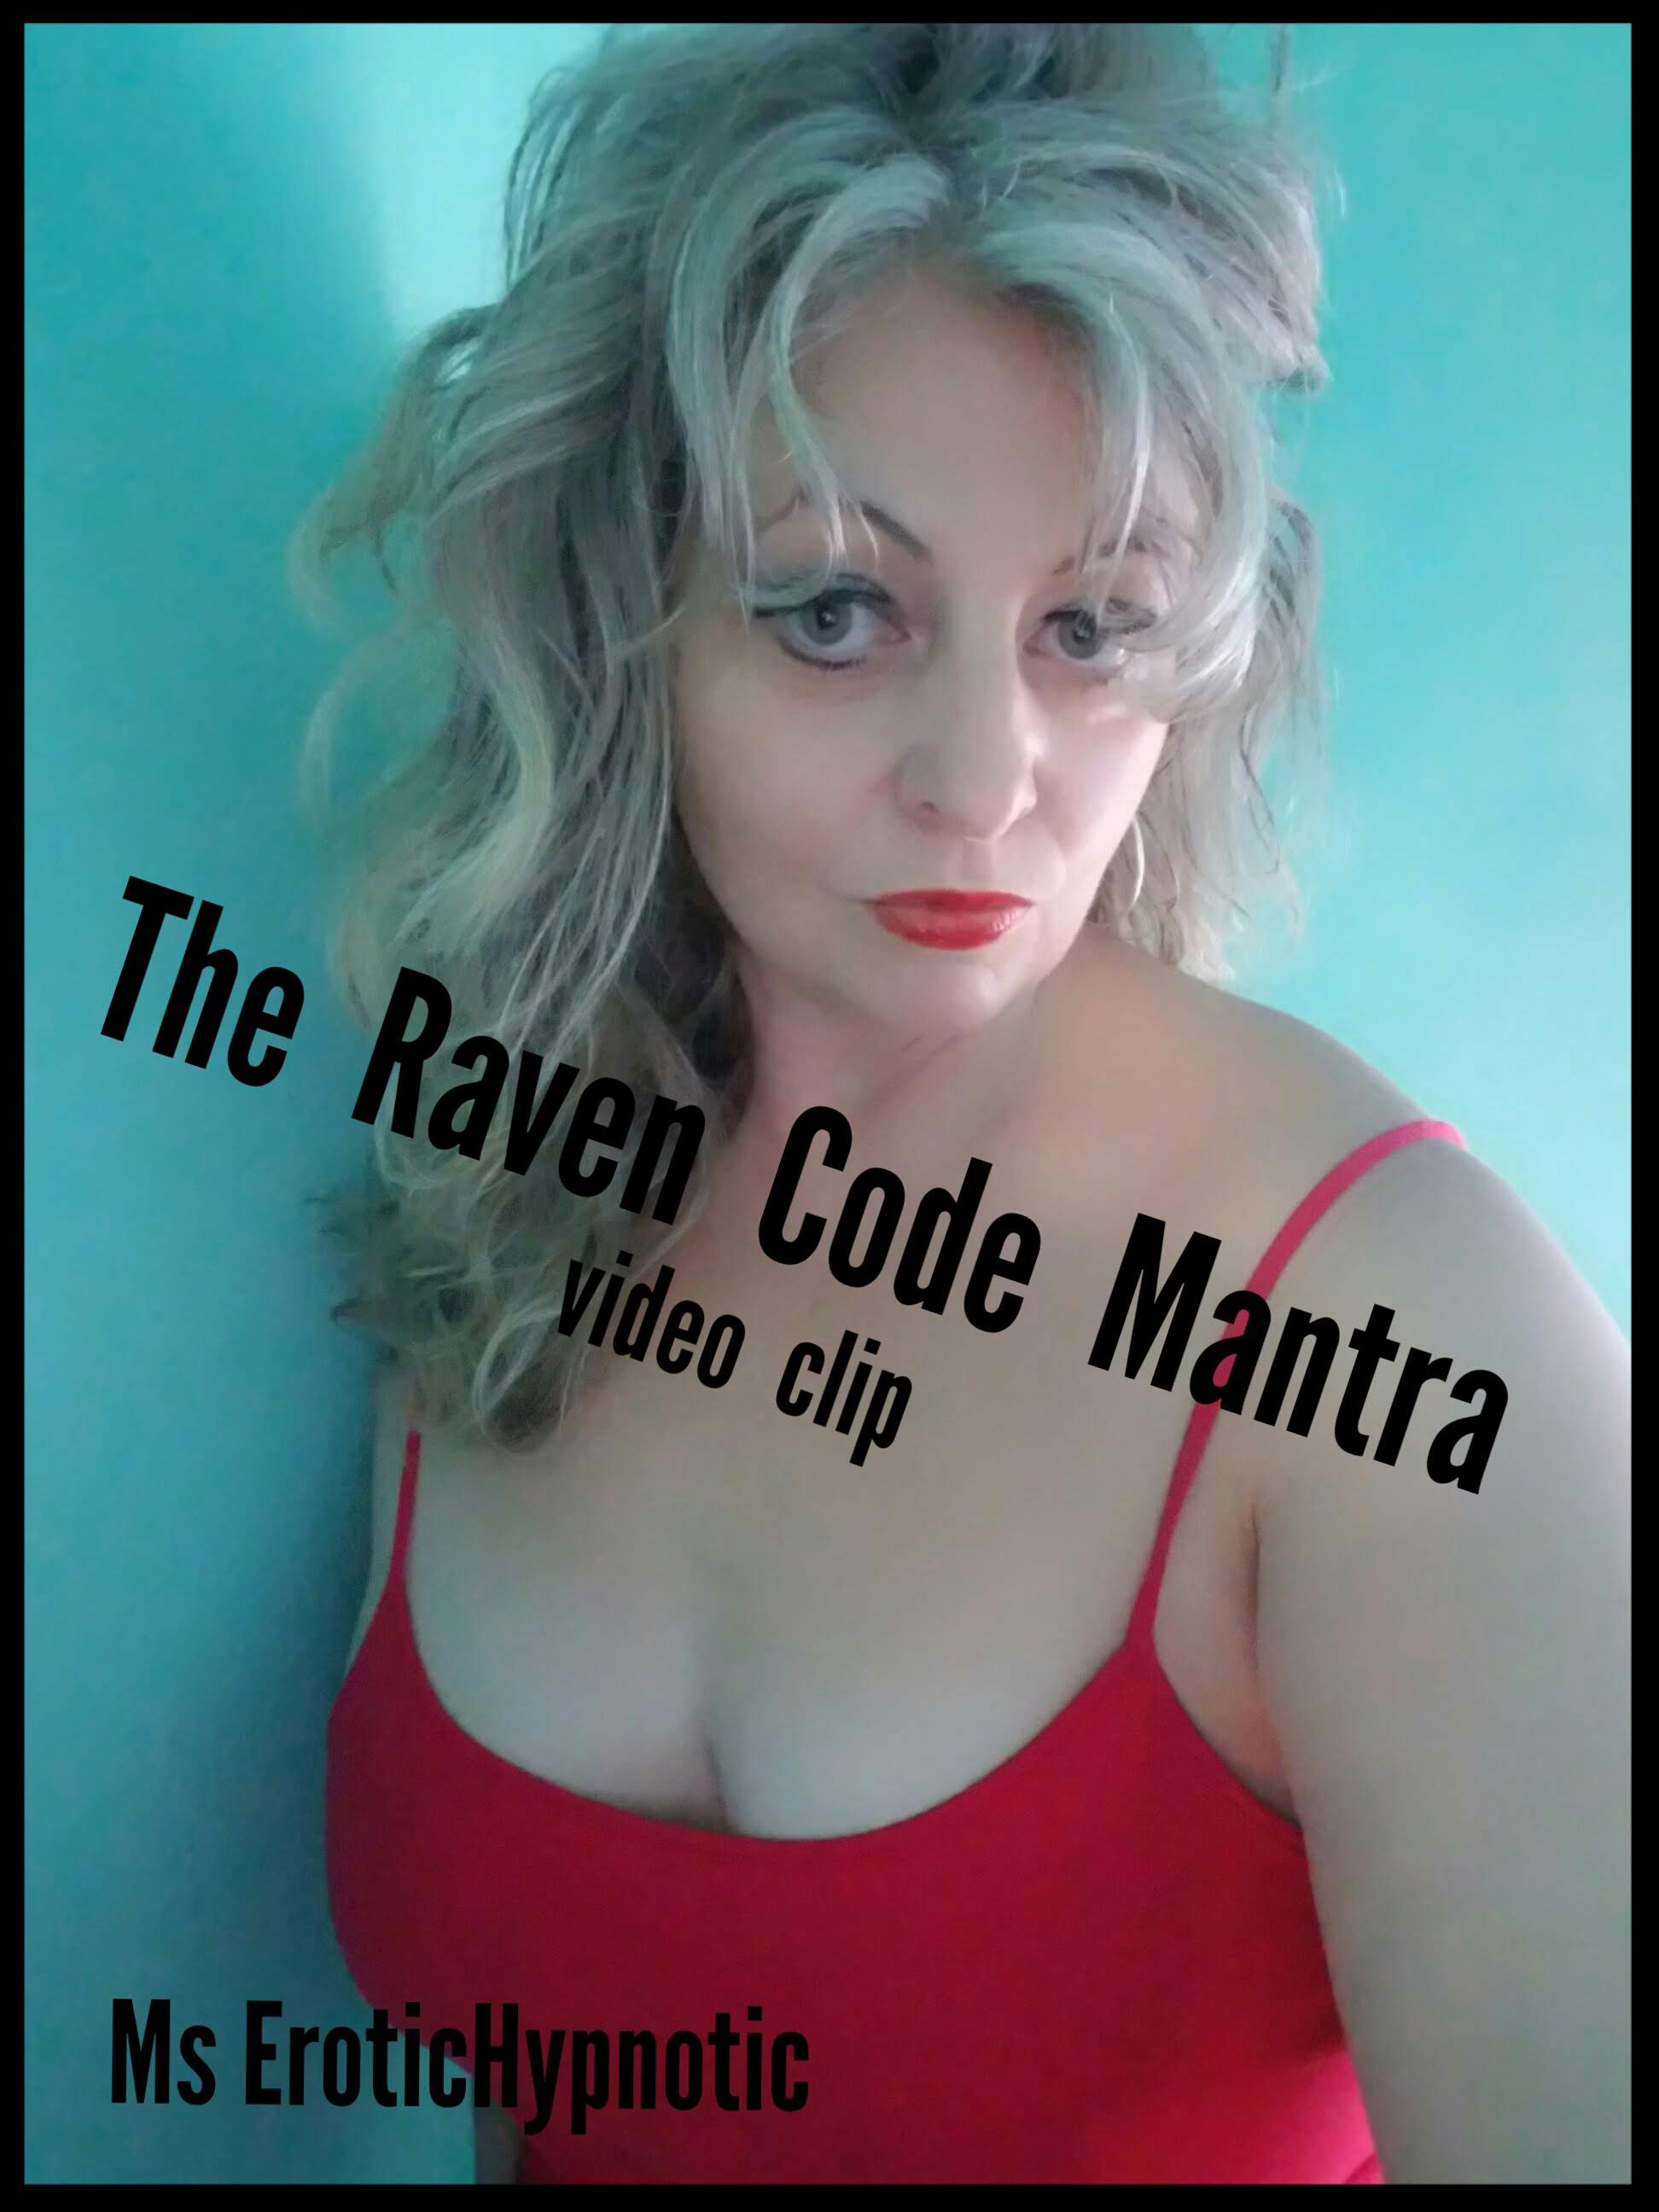 The Raven Code Mantra